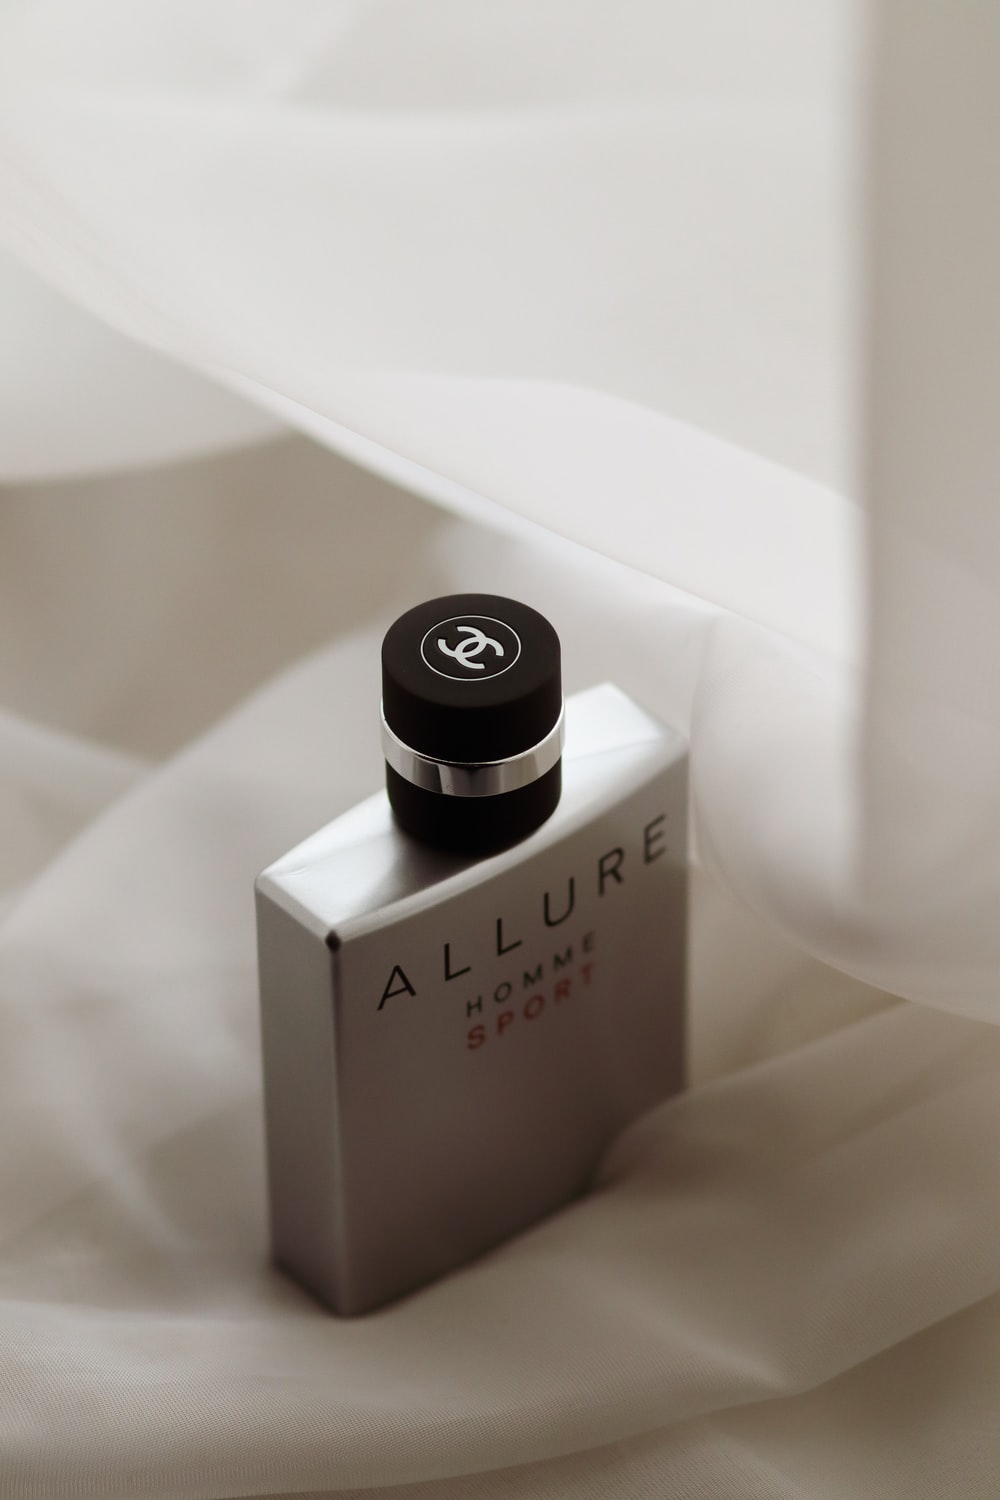 selective focus photography of Allure Homme fragrance bottle